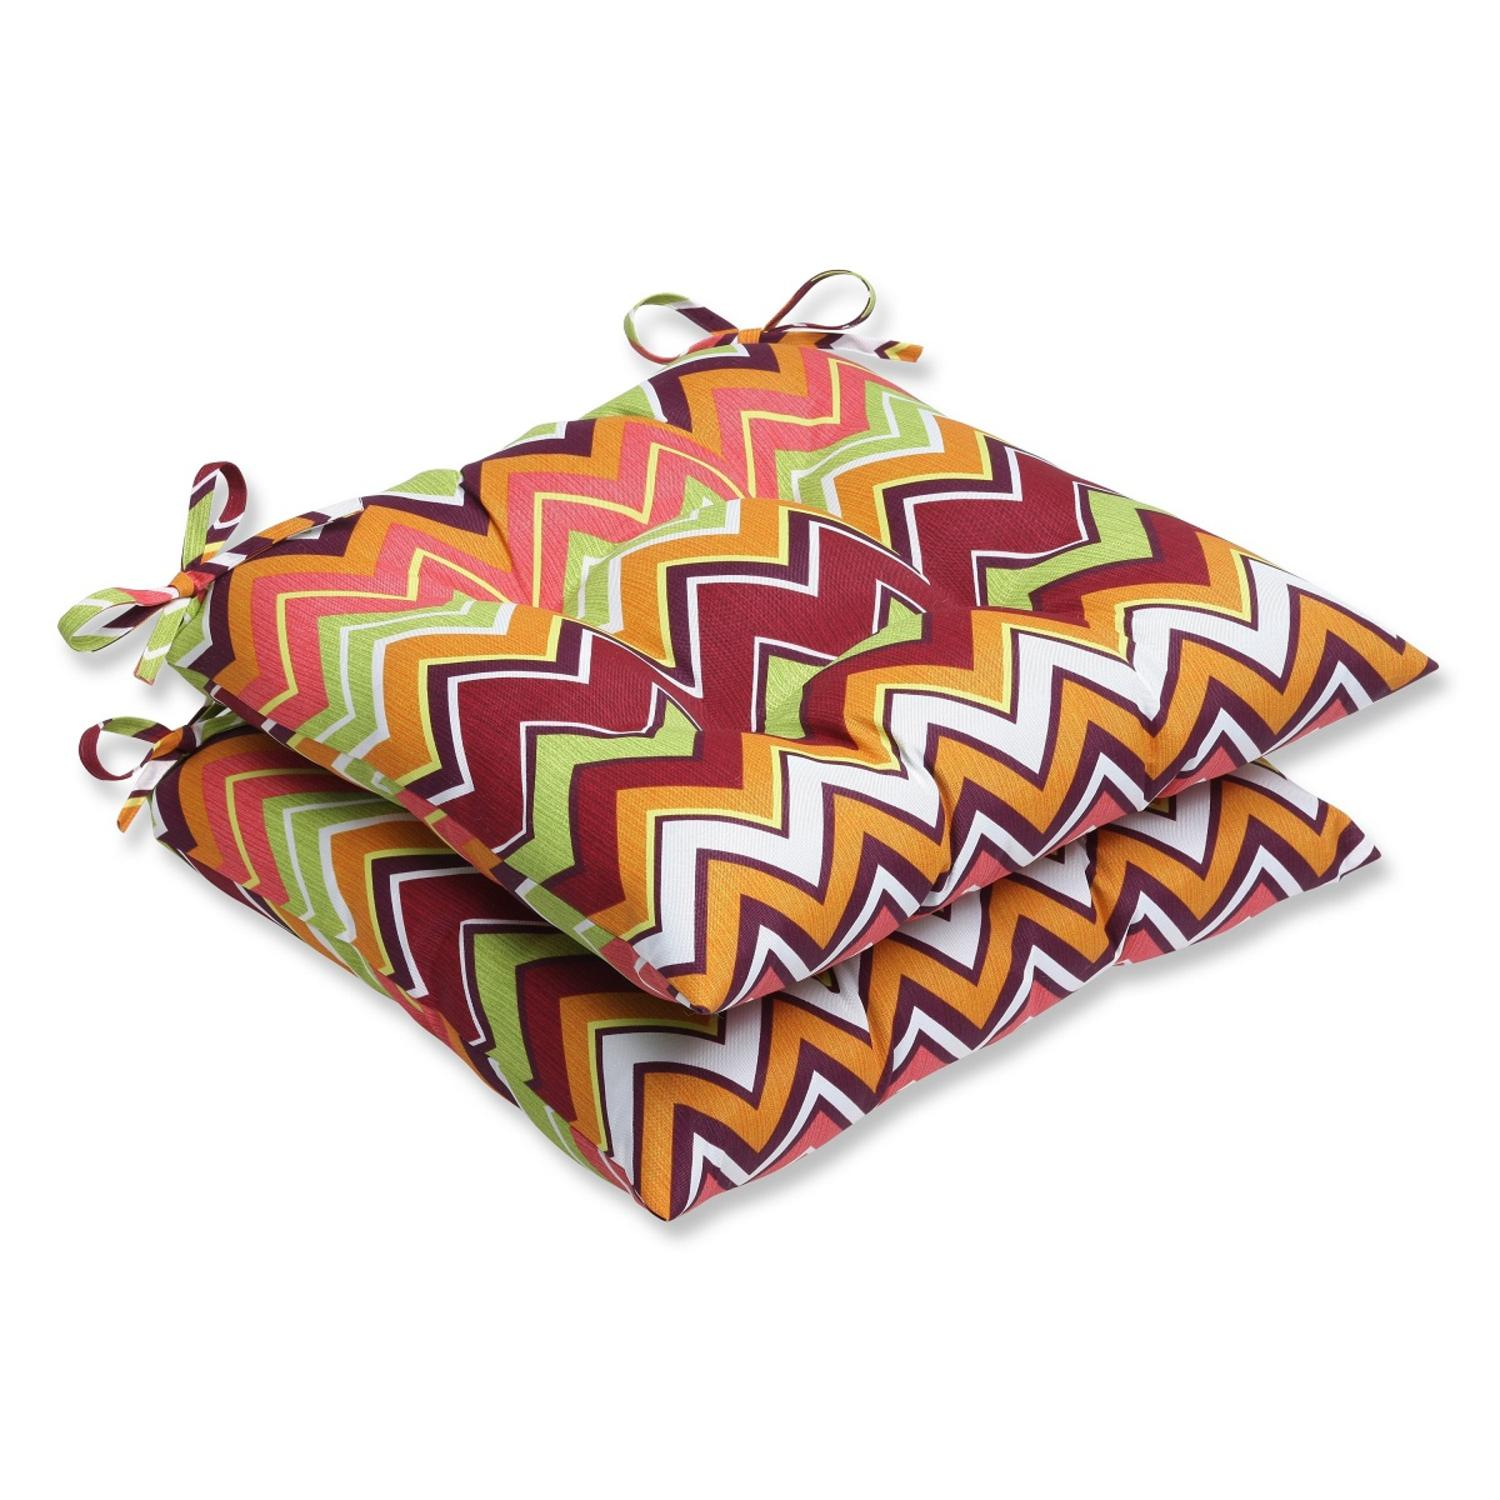 Set Of 2 Chevron Surtido Green, Pink And Orange Outdoor Patio Wrought Iron  Chair Cushions